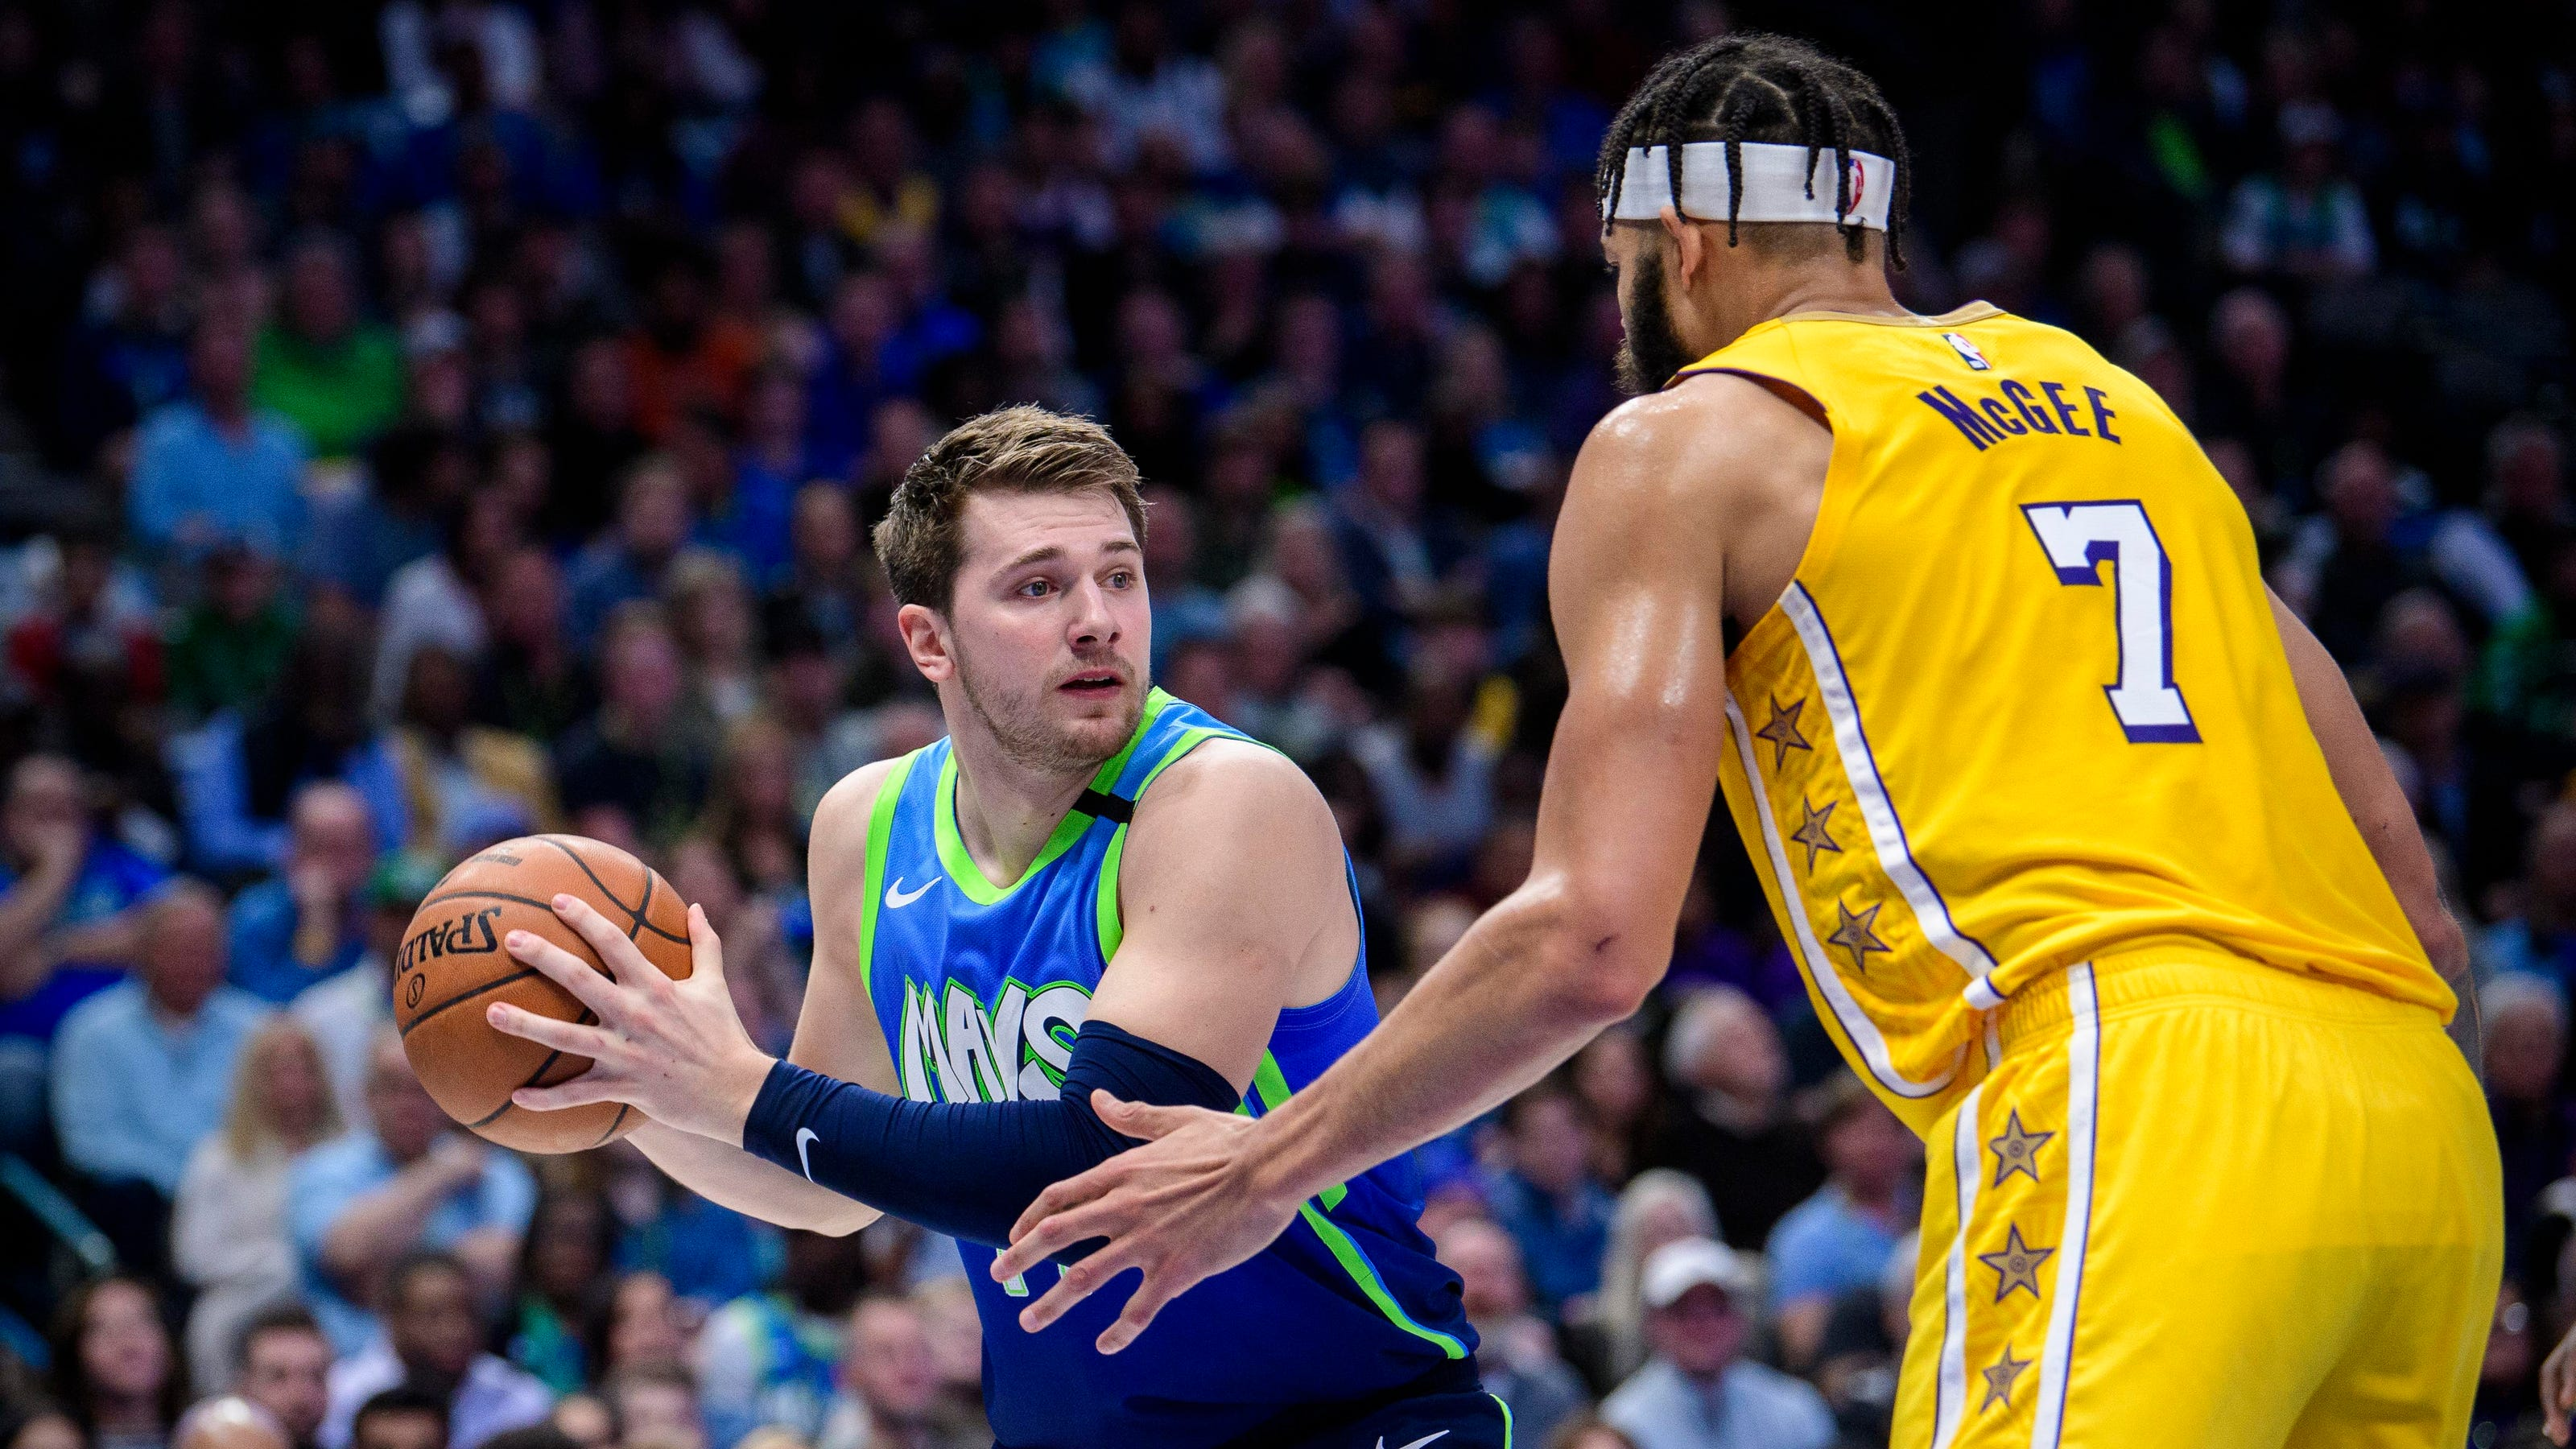 Luka Doncic Rips Jersey In Anger In Mavericks Game Vs Lakers